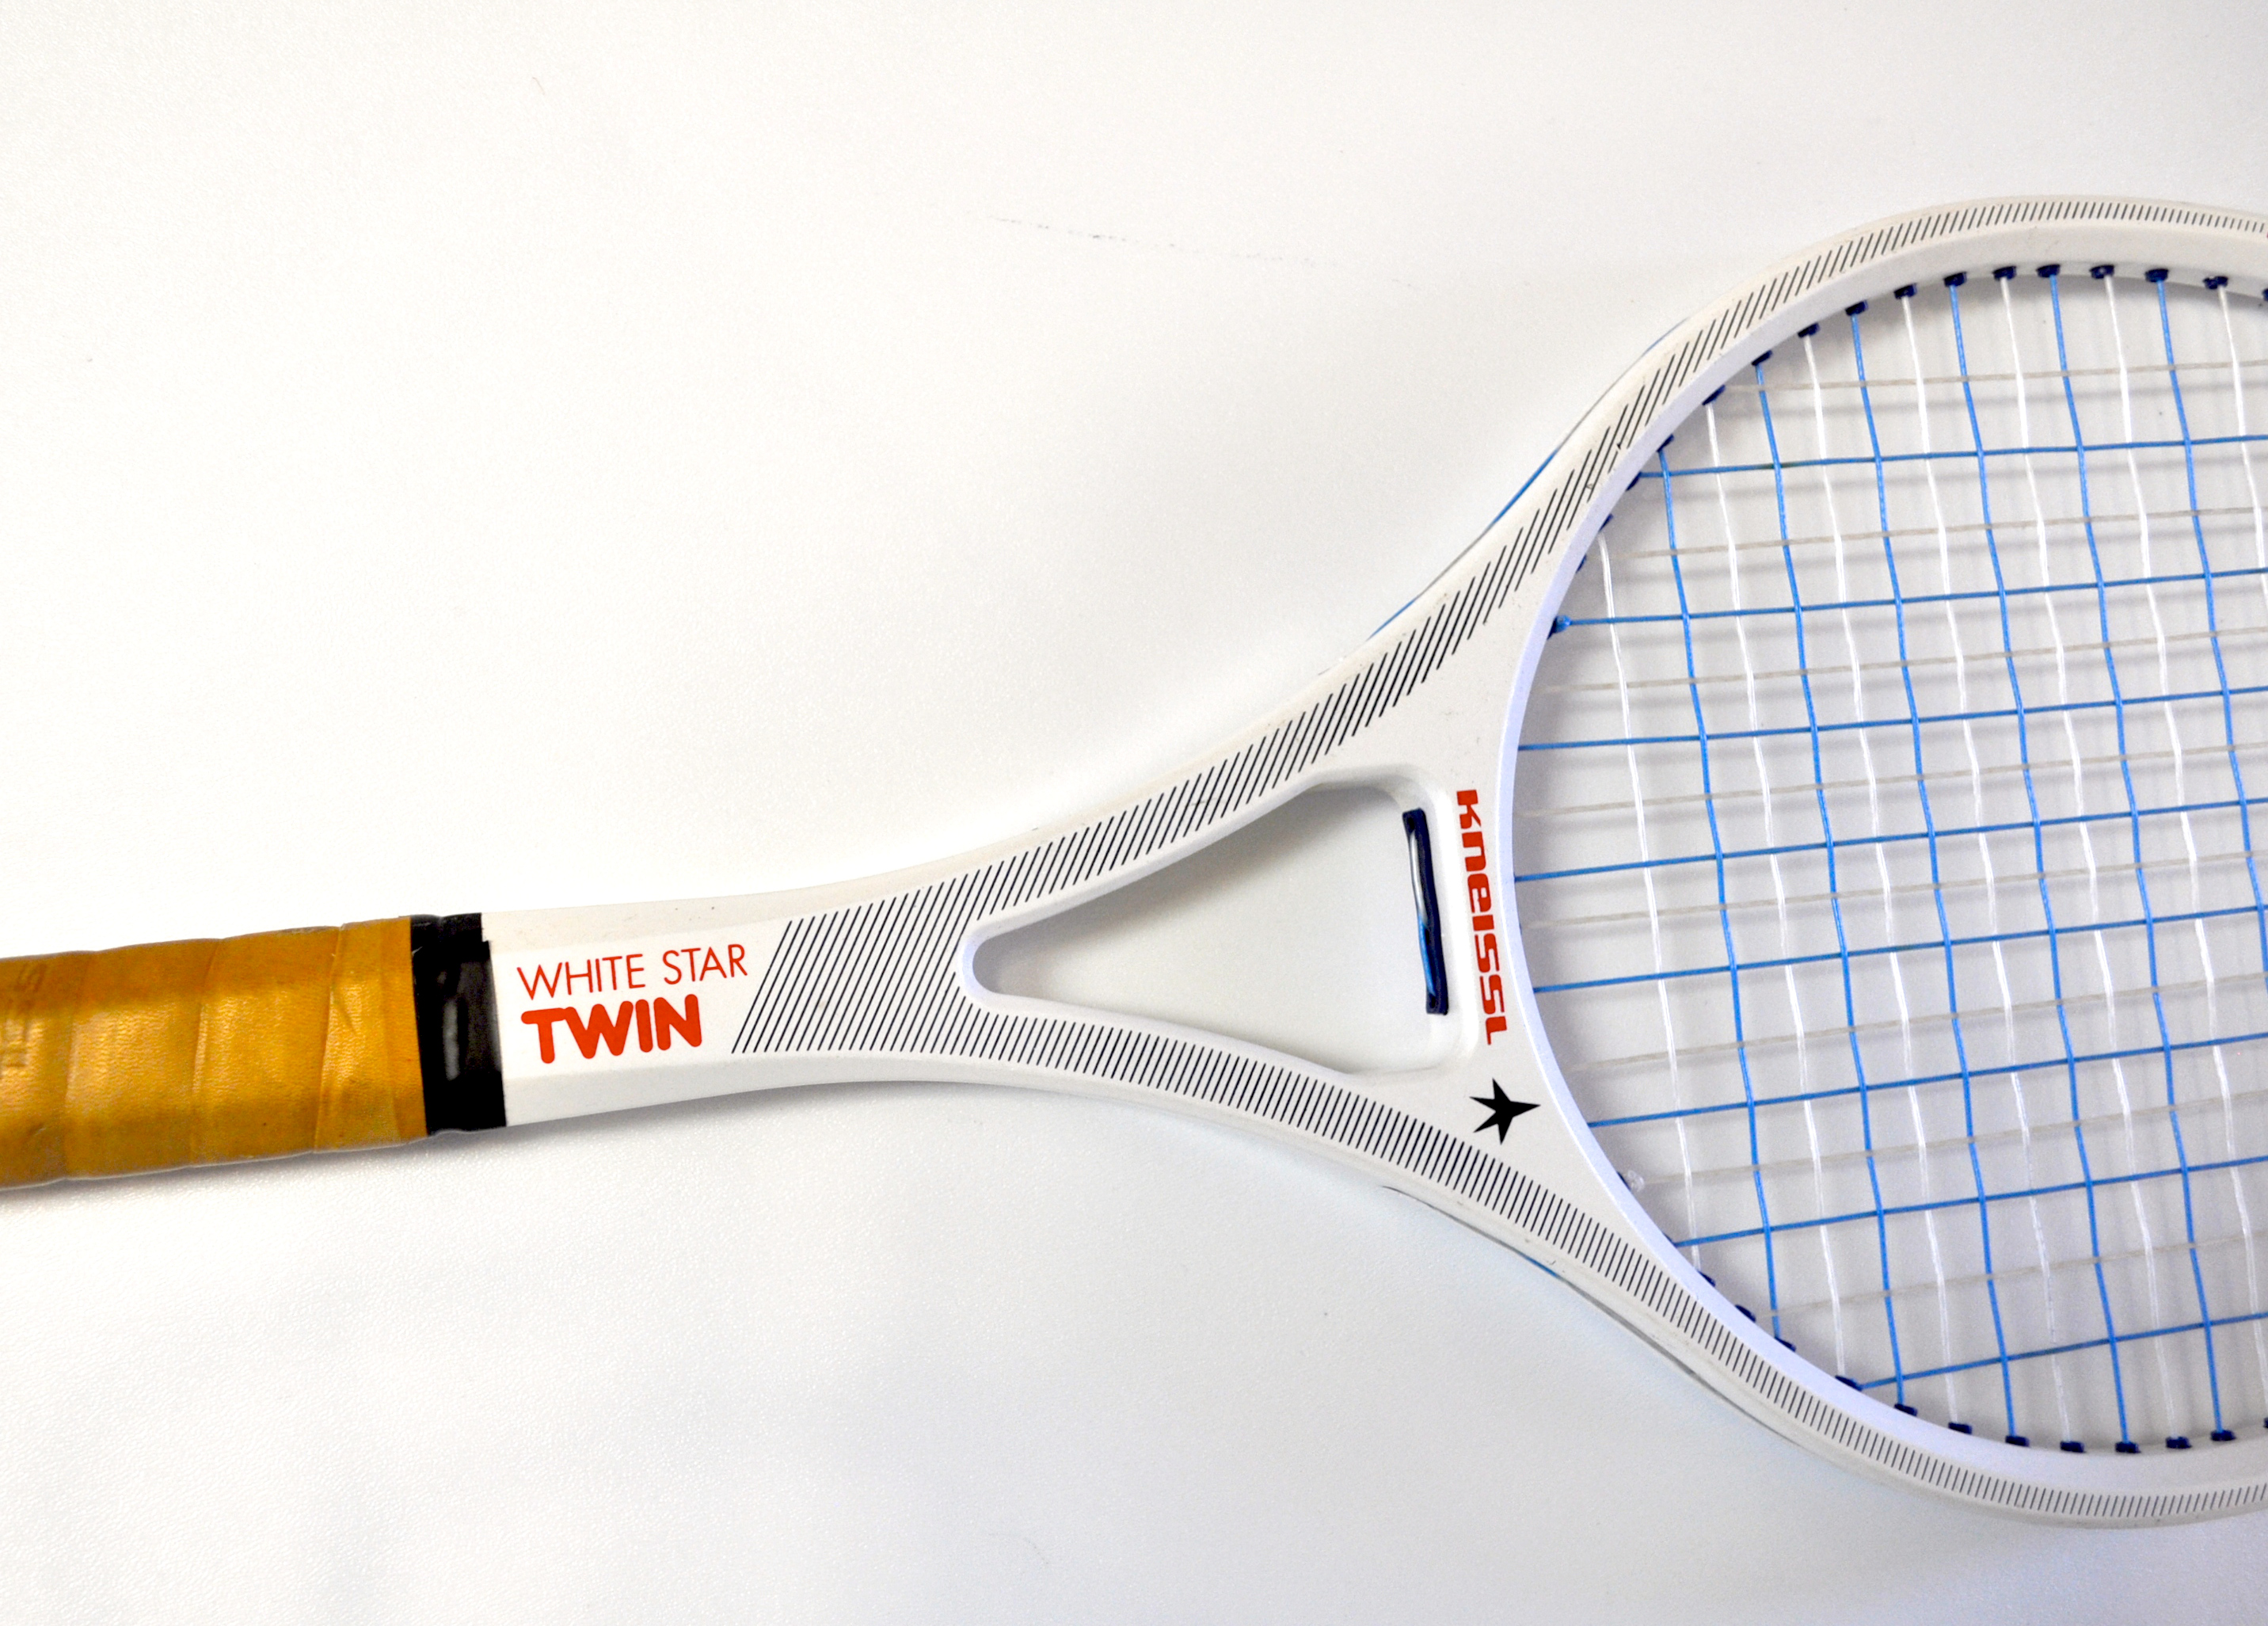 a6ca8bfb Kneissl White Star Twin - Racquet Museum